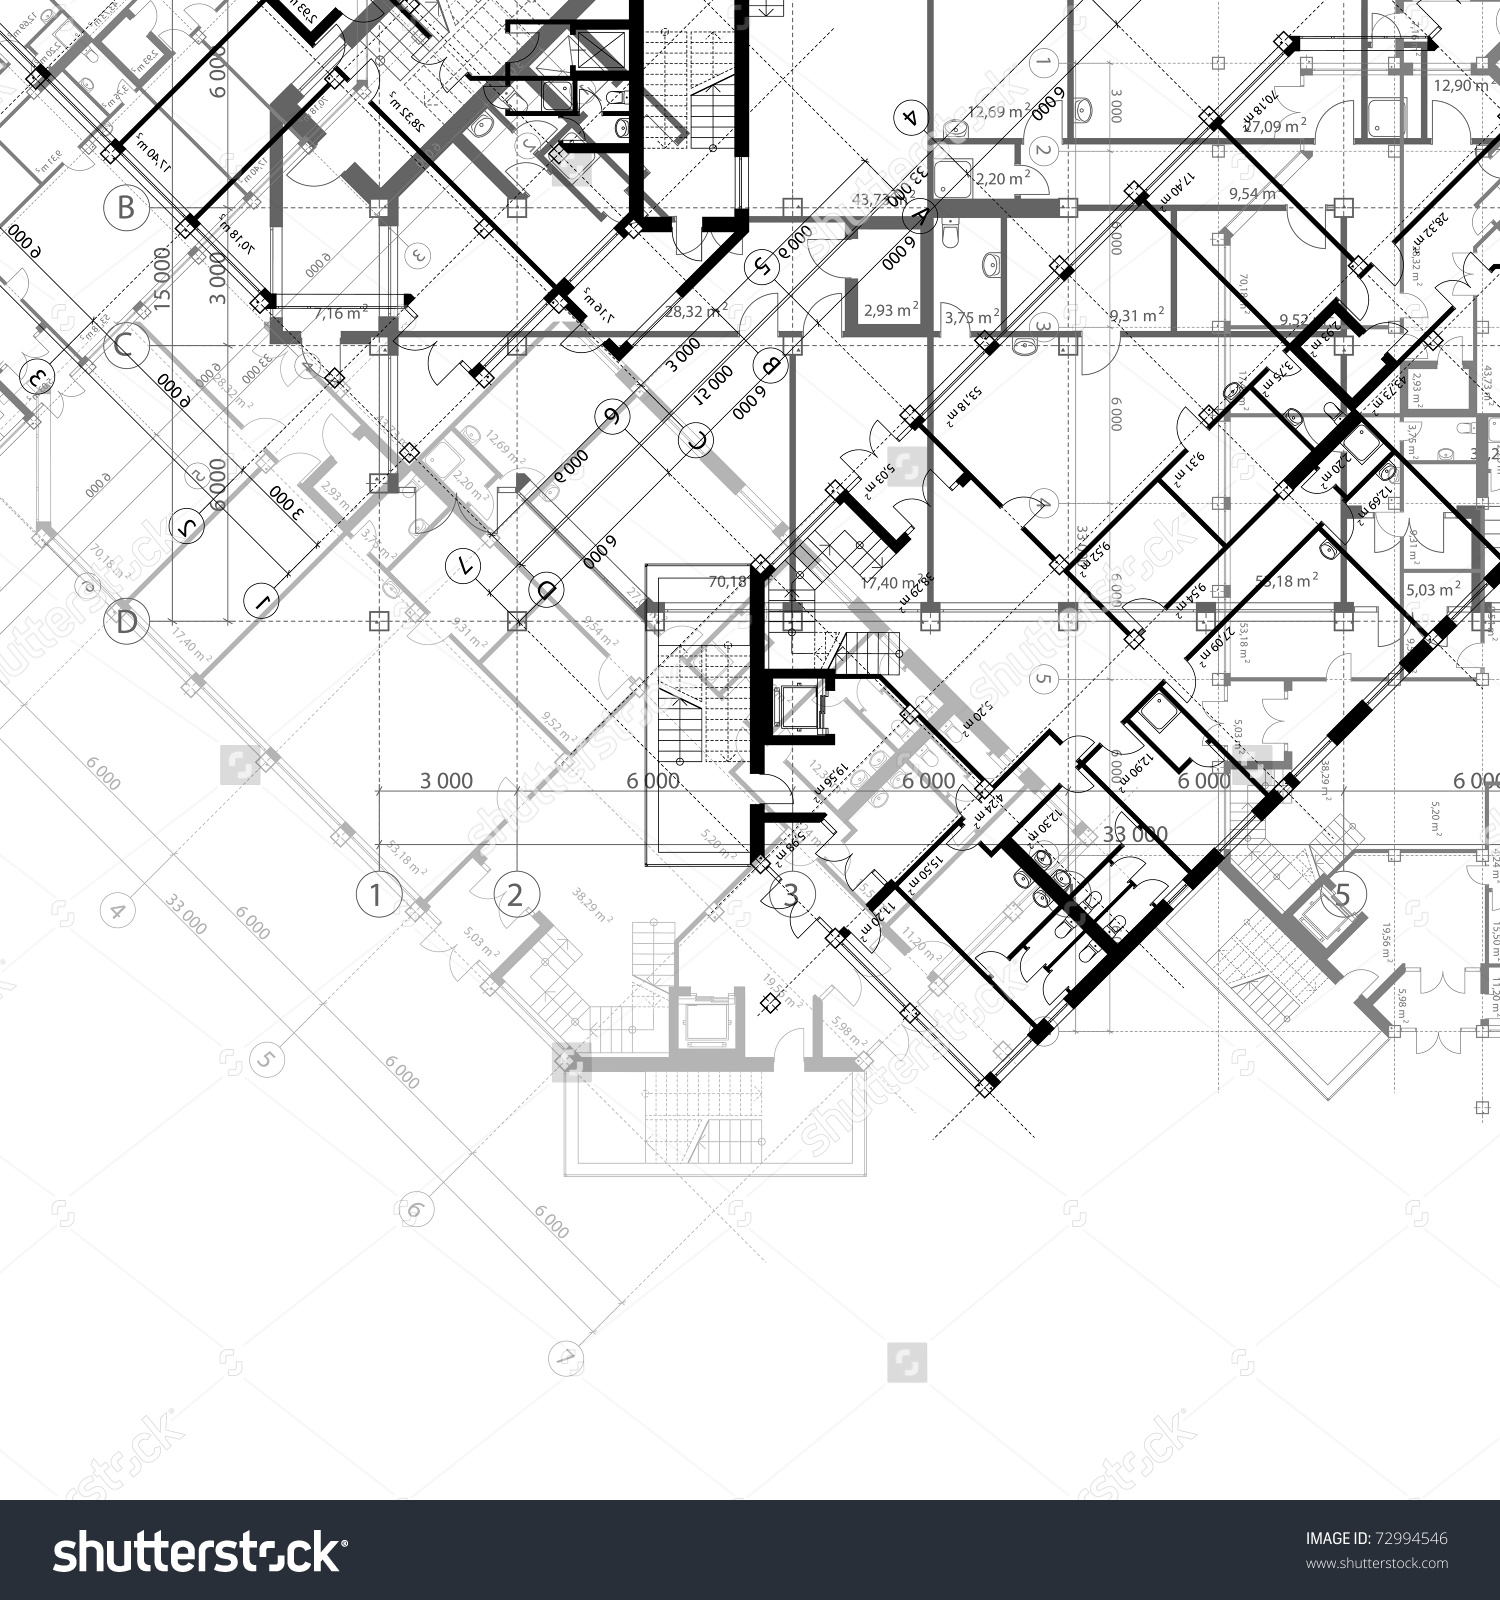 Building construction drawing at getdrawings free for personal 1500x1600 architectural drawings vector malvernweather Gallery